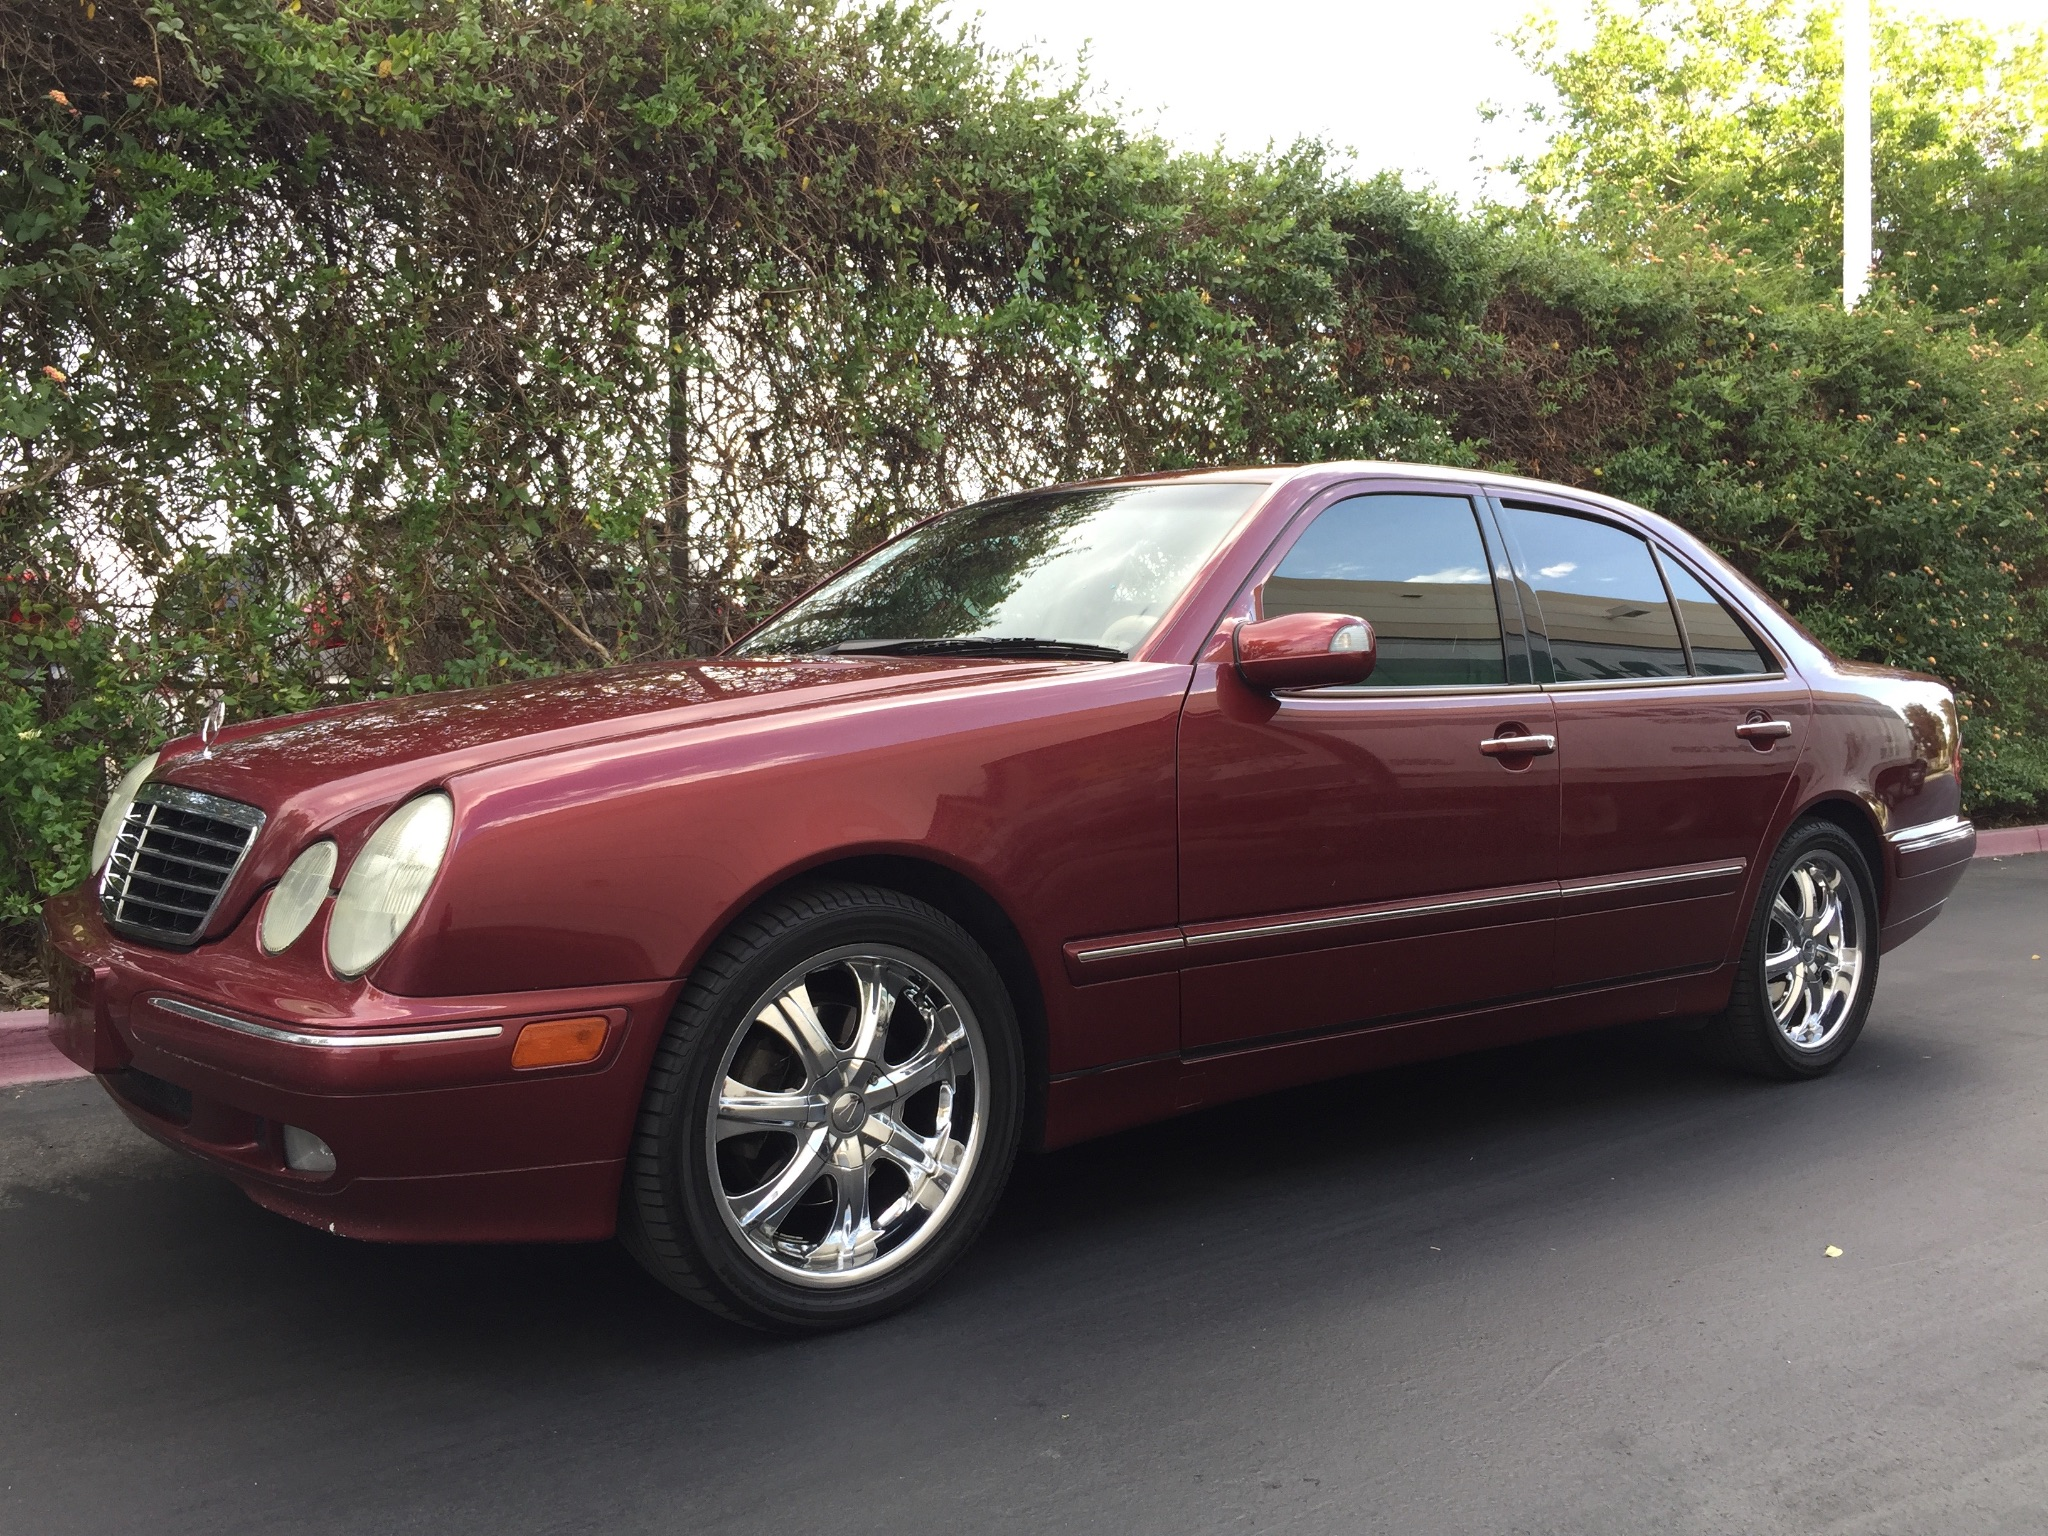 Used 2001 mercedes benz e320 at city cars warehouse inc for 2001 mercedes benz e320